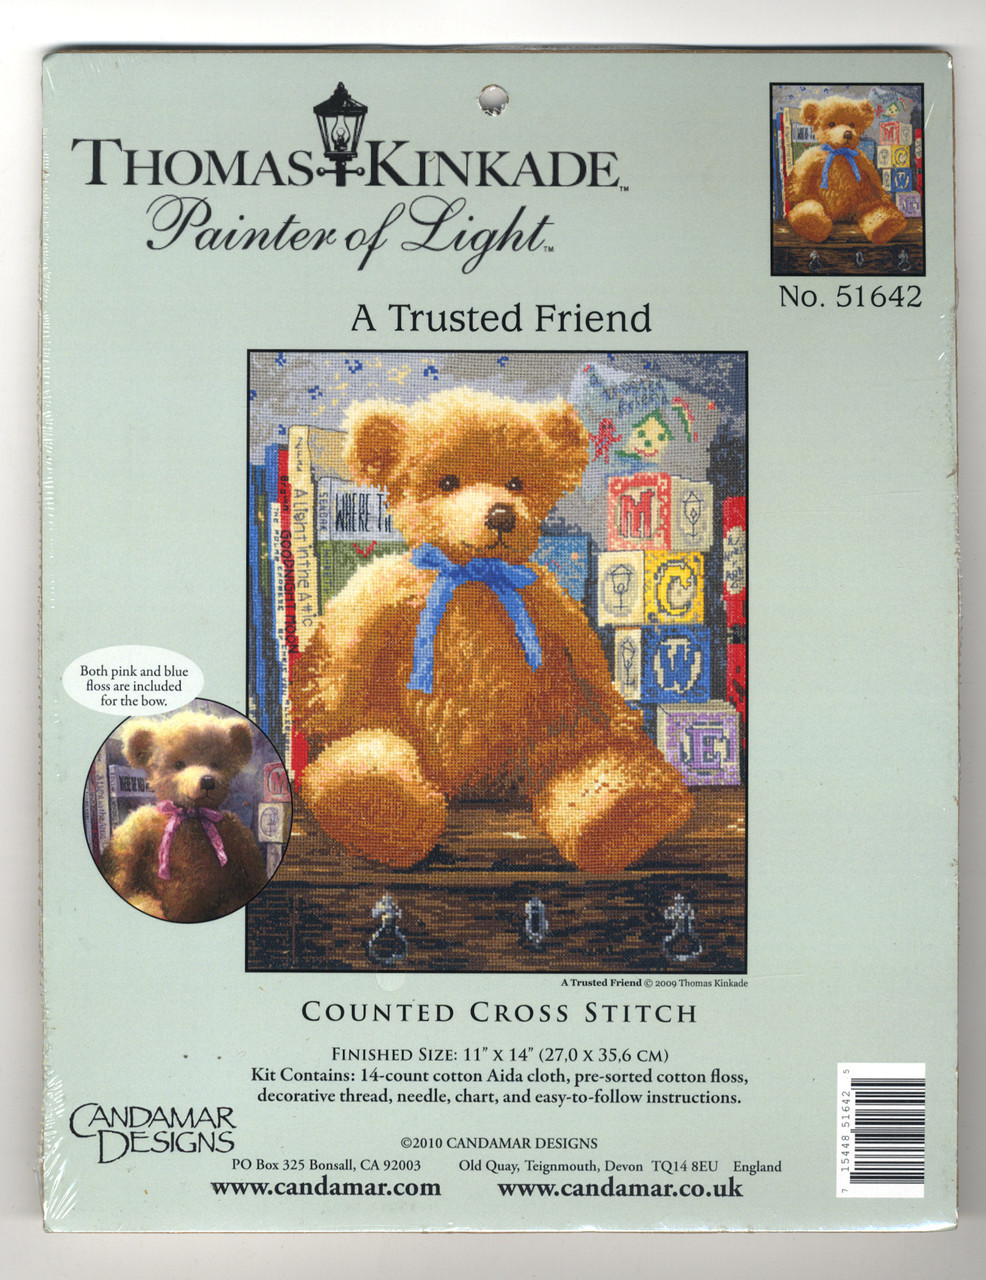 Candamar / Thomas Kinkade - A Trusted Friend